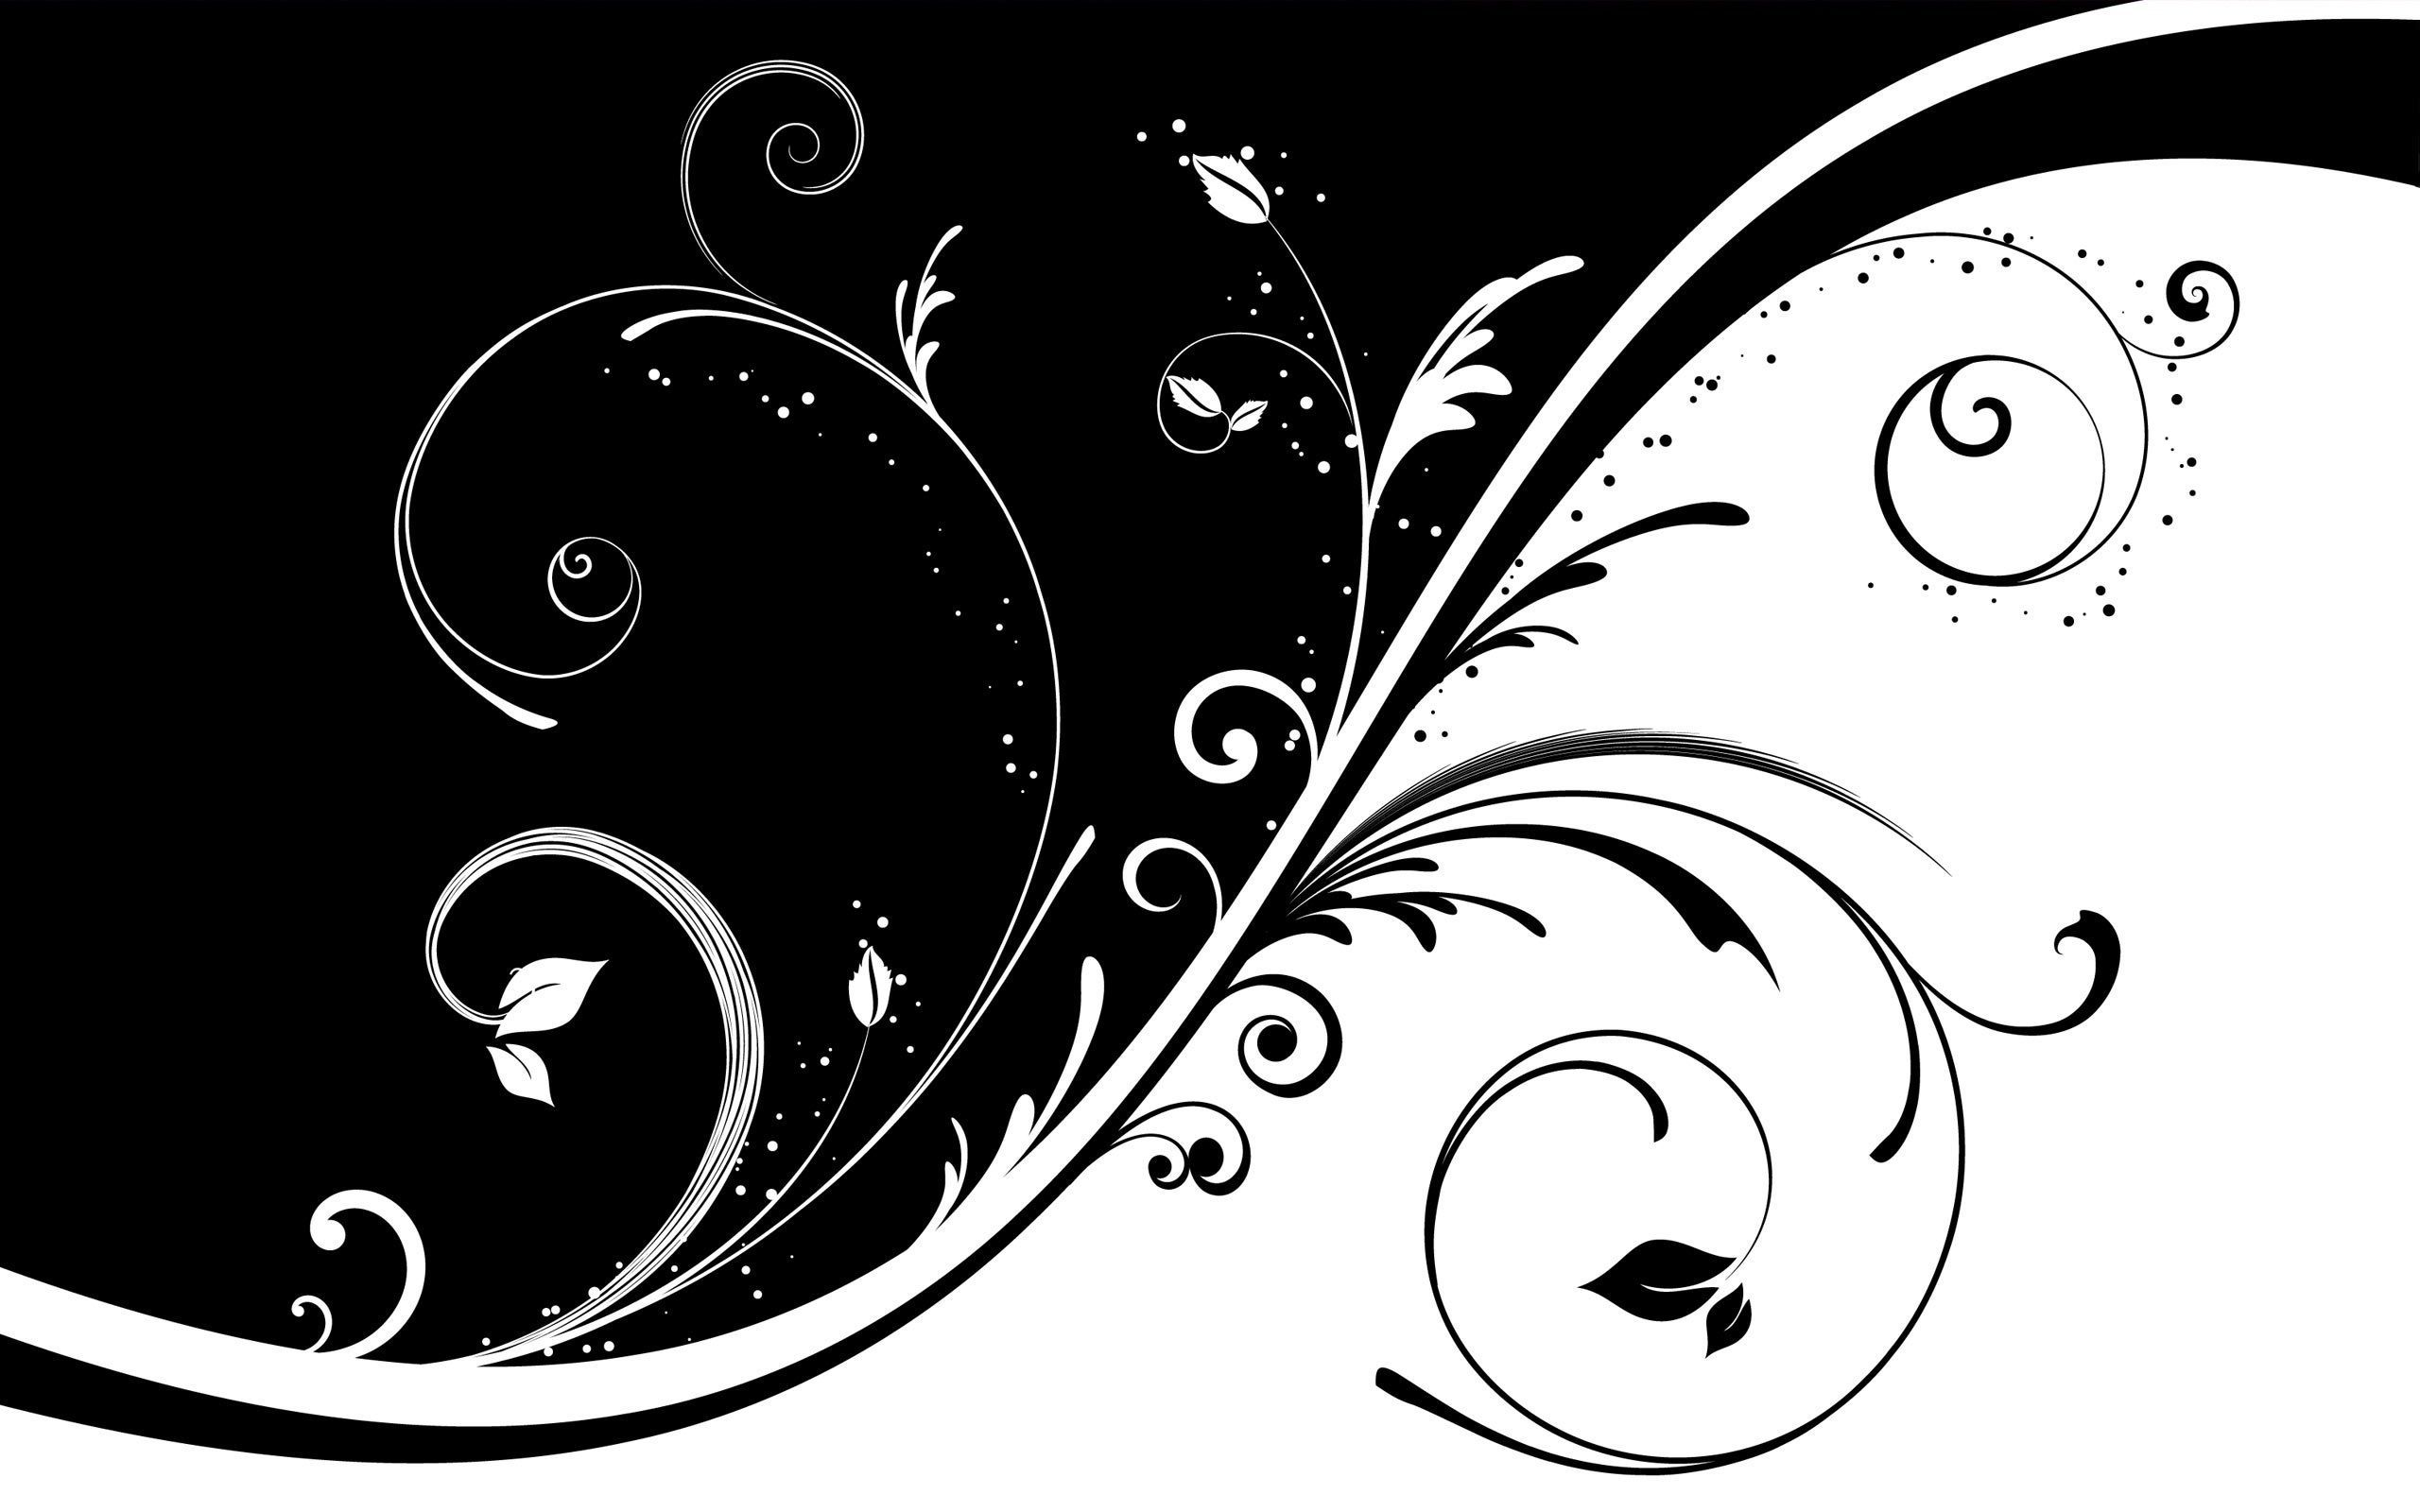 Black And White Vector Art Wallpapers - Top Free Black And White Vector Art  Backgrounds - WallpaperAccess